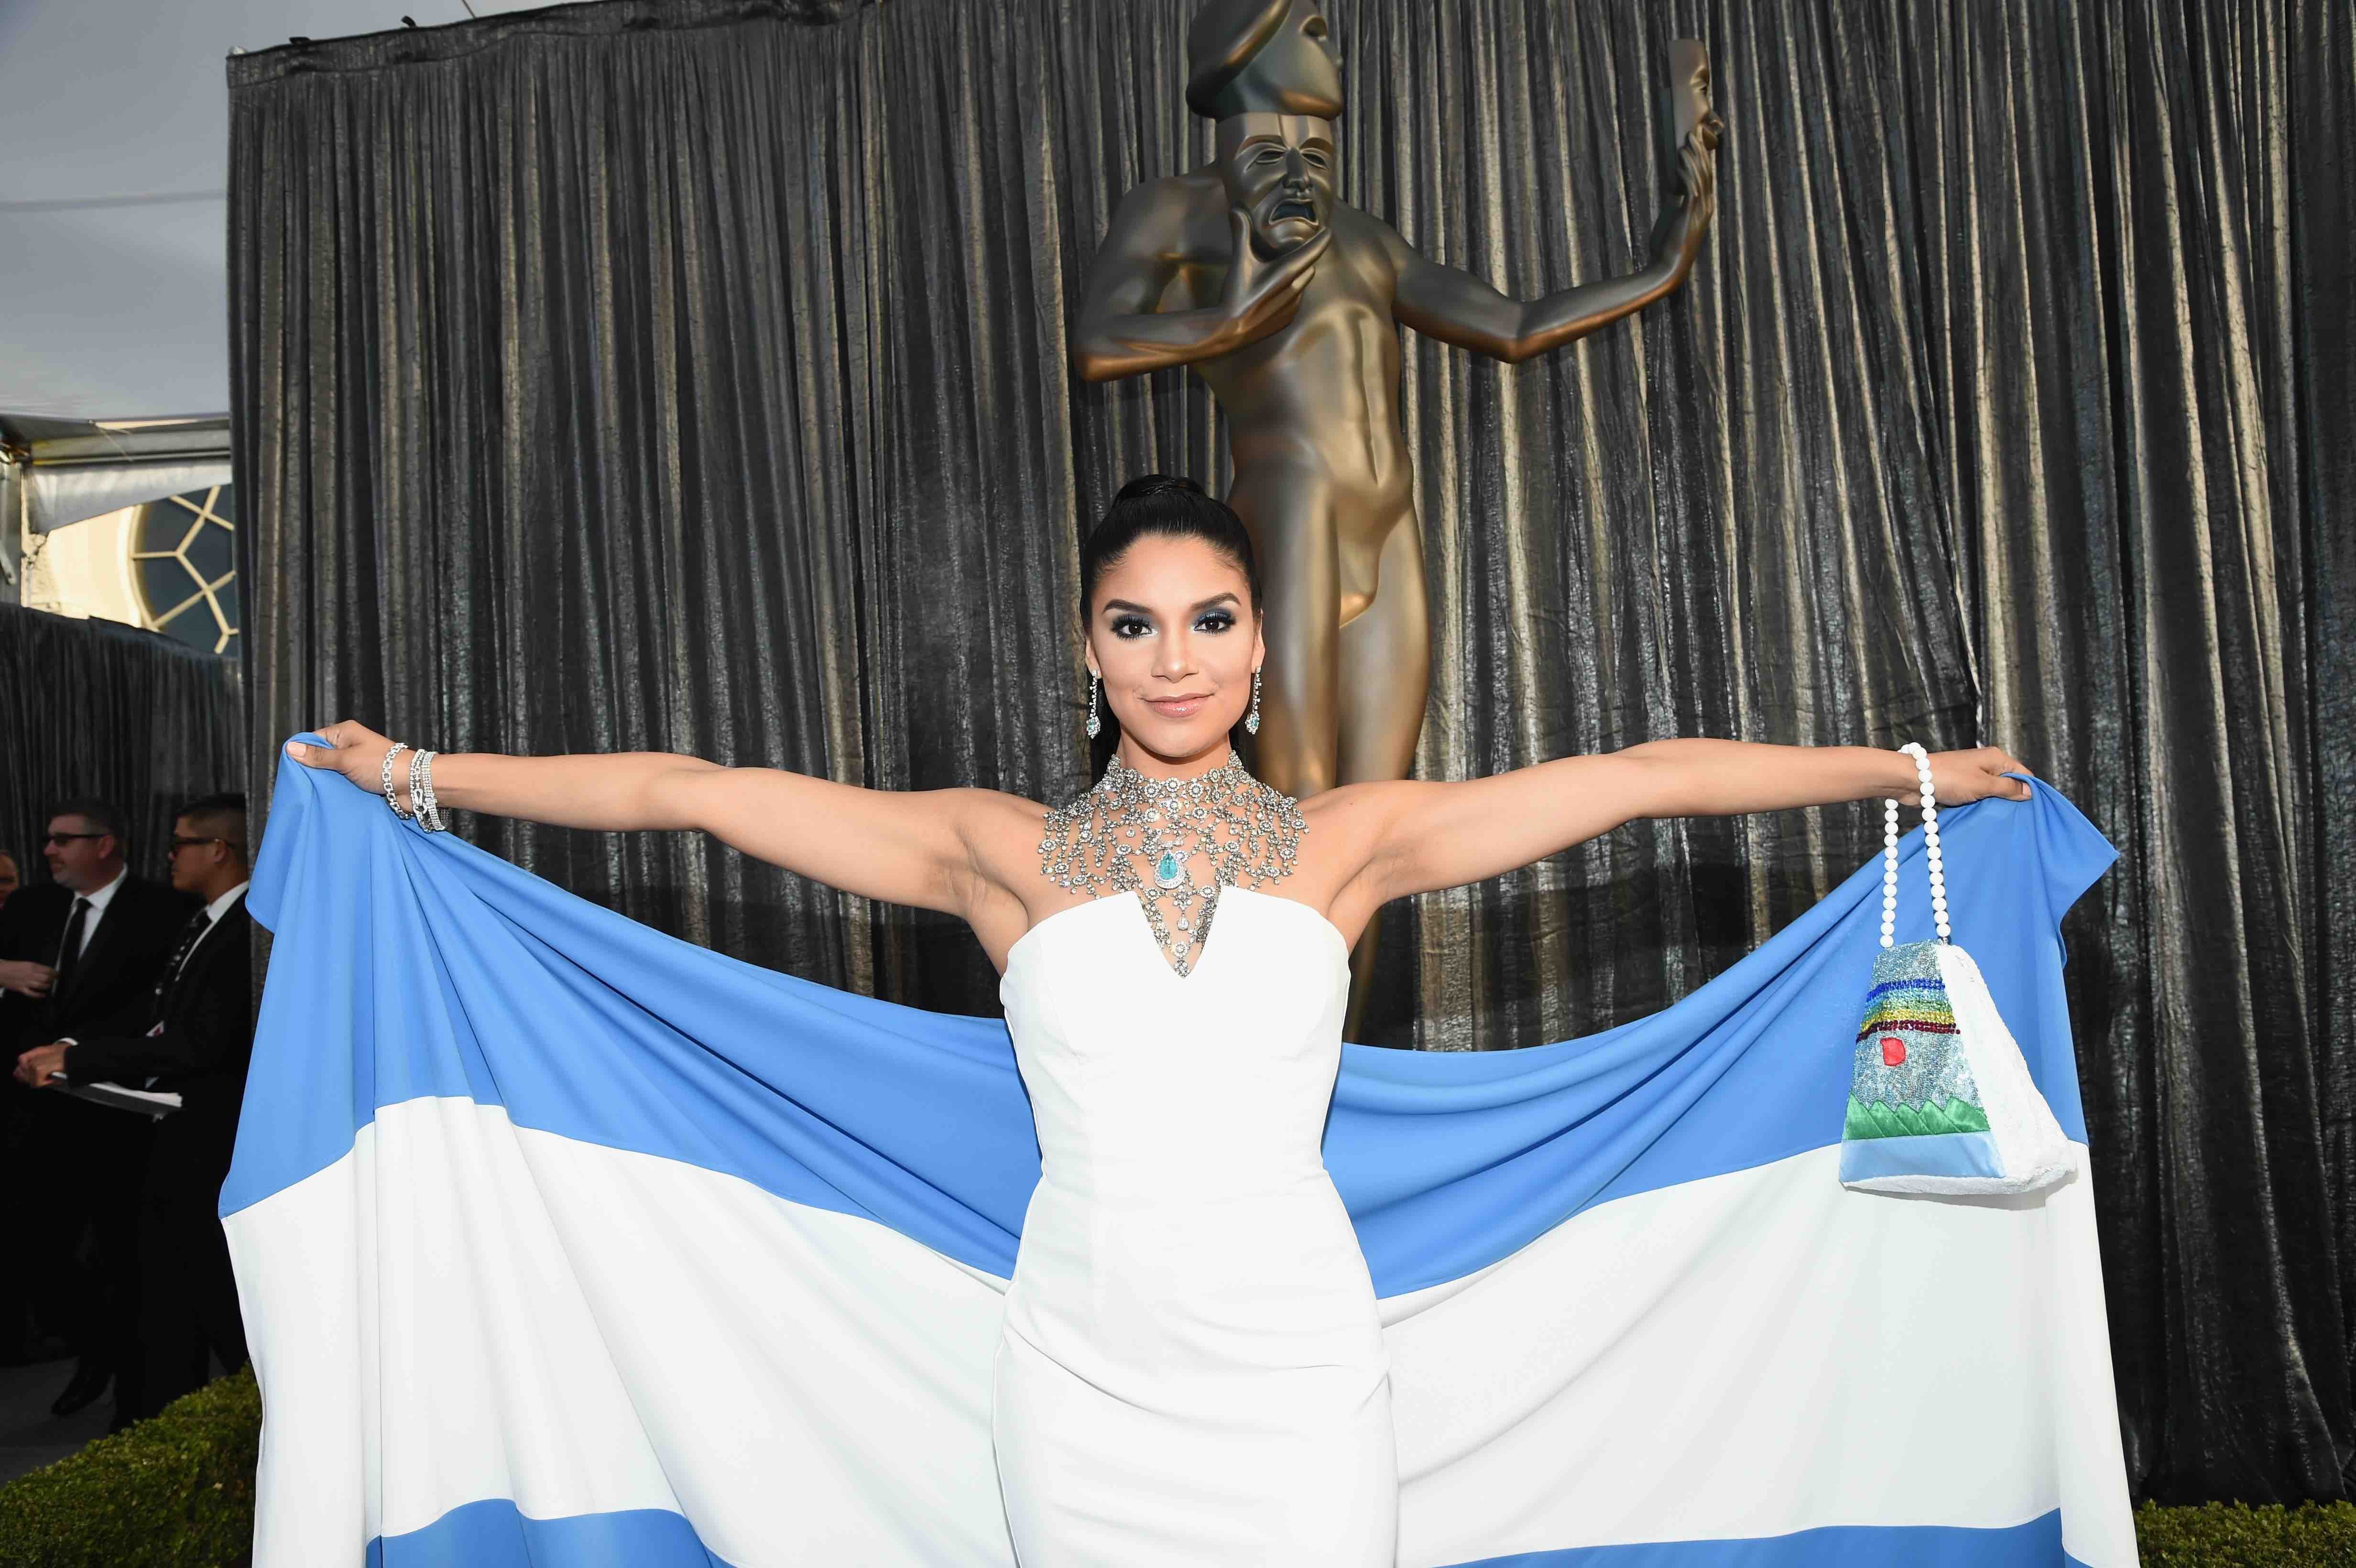 'GLOW' Actress Shakira Barrera Shows Solidarity With Nicaragua With Her SAG Awards Outfit